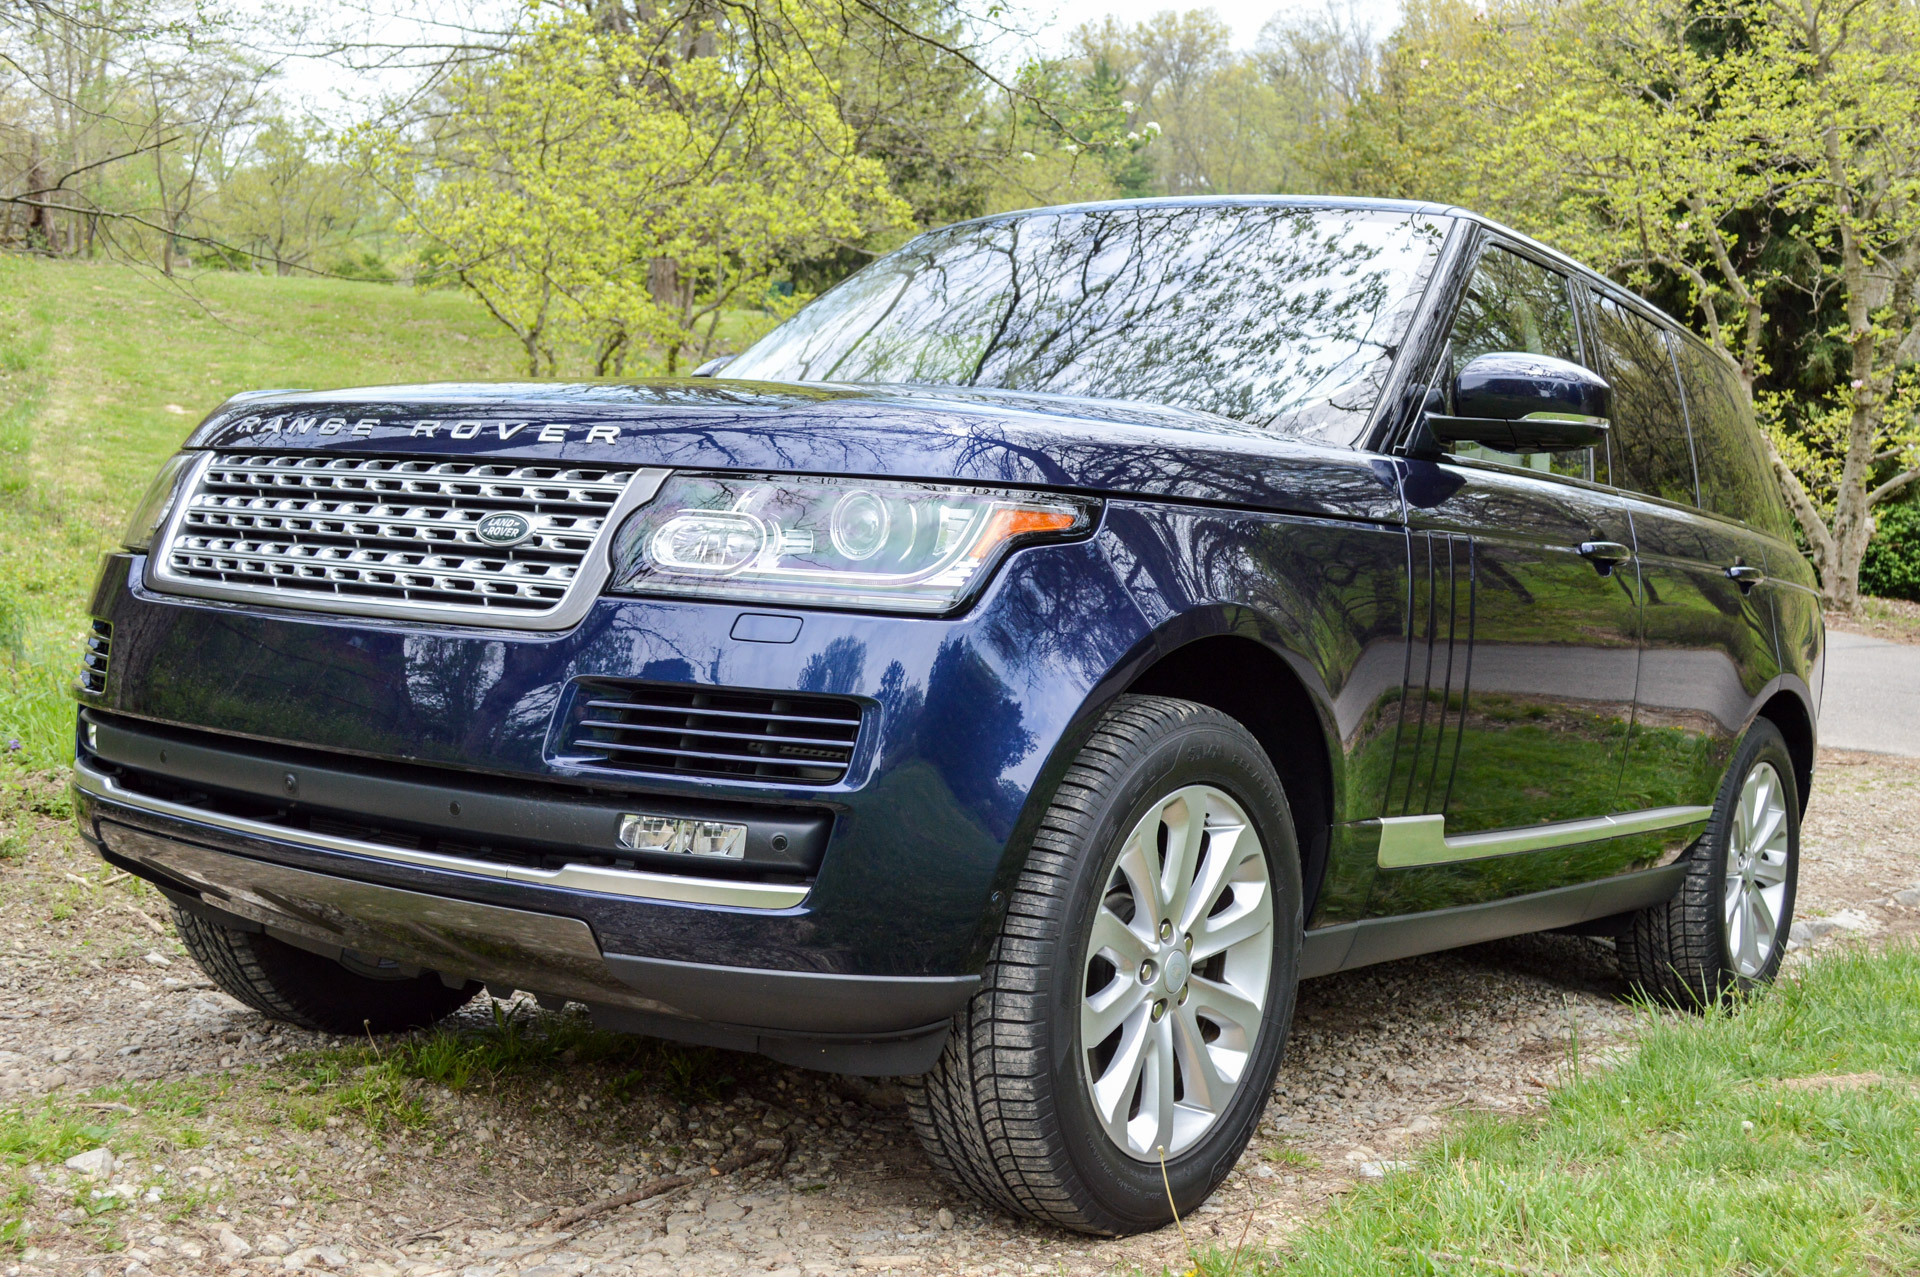 Land rover range rover photo - 1